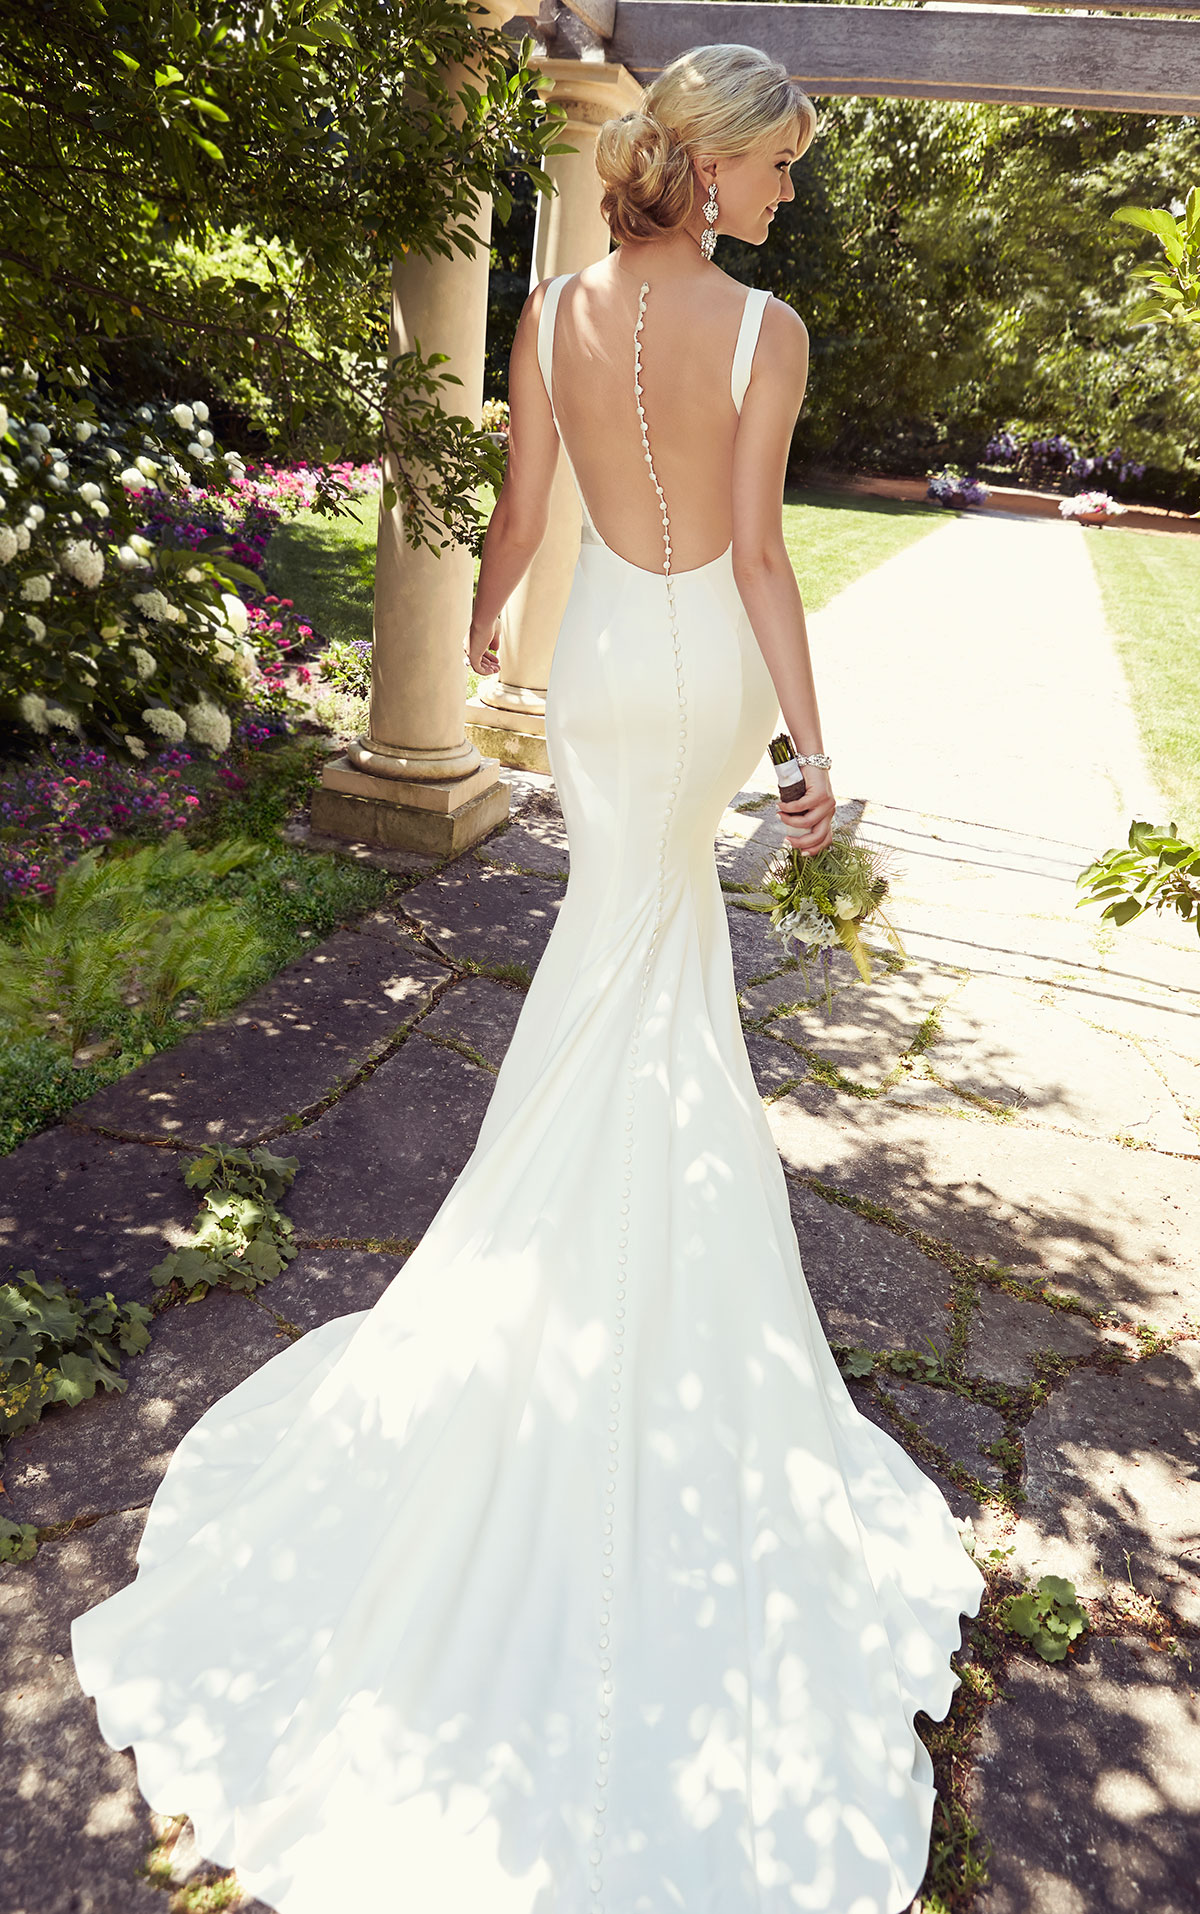 12 Beautiful Backless Wedding Dresses Amp Gowns